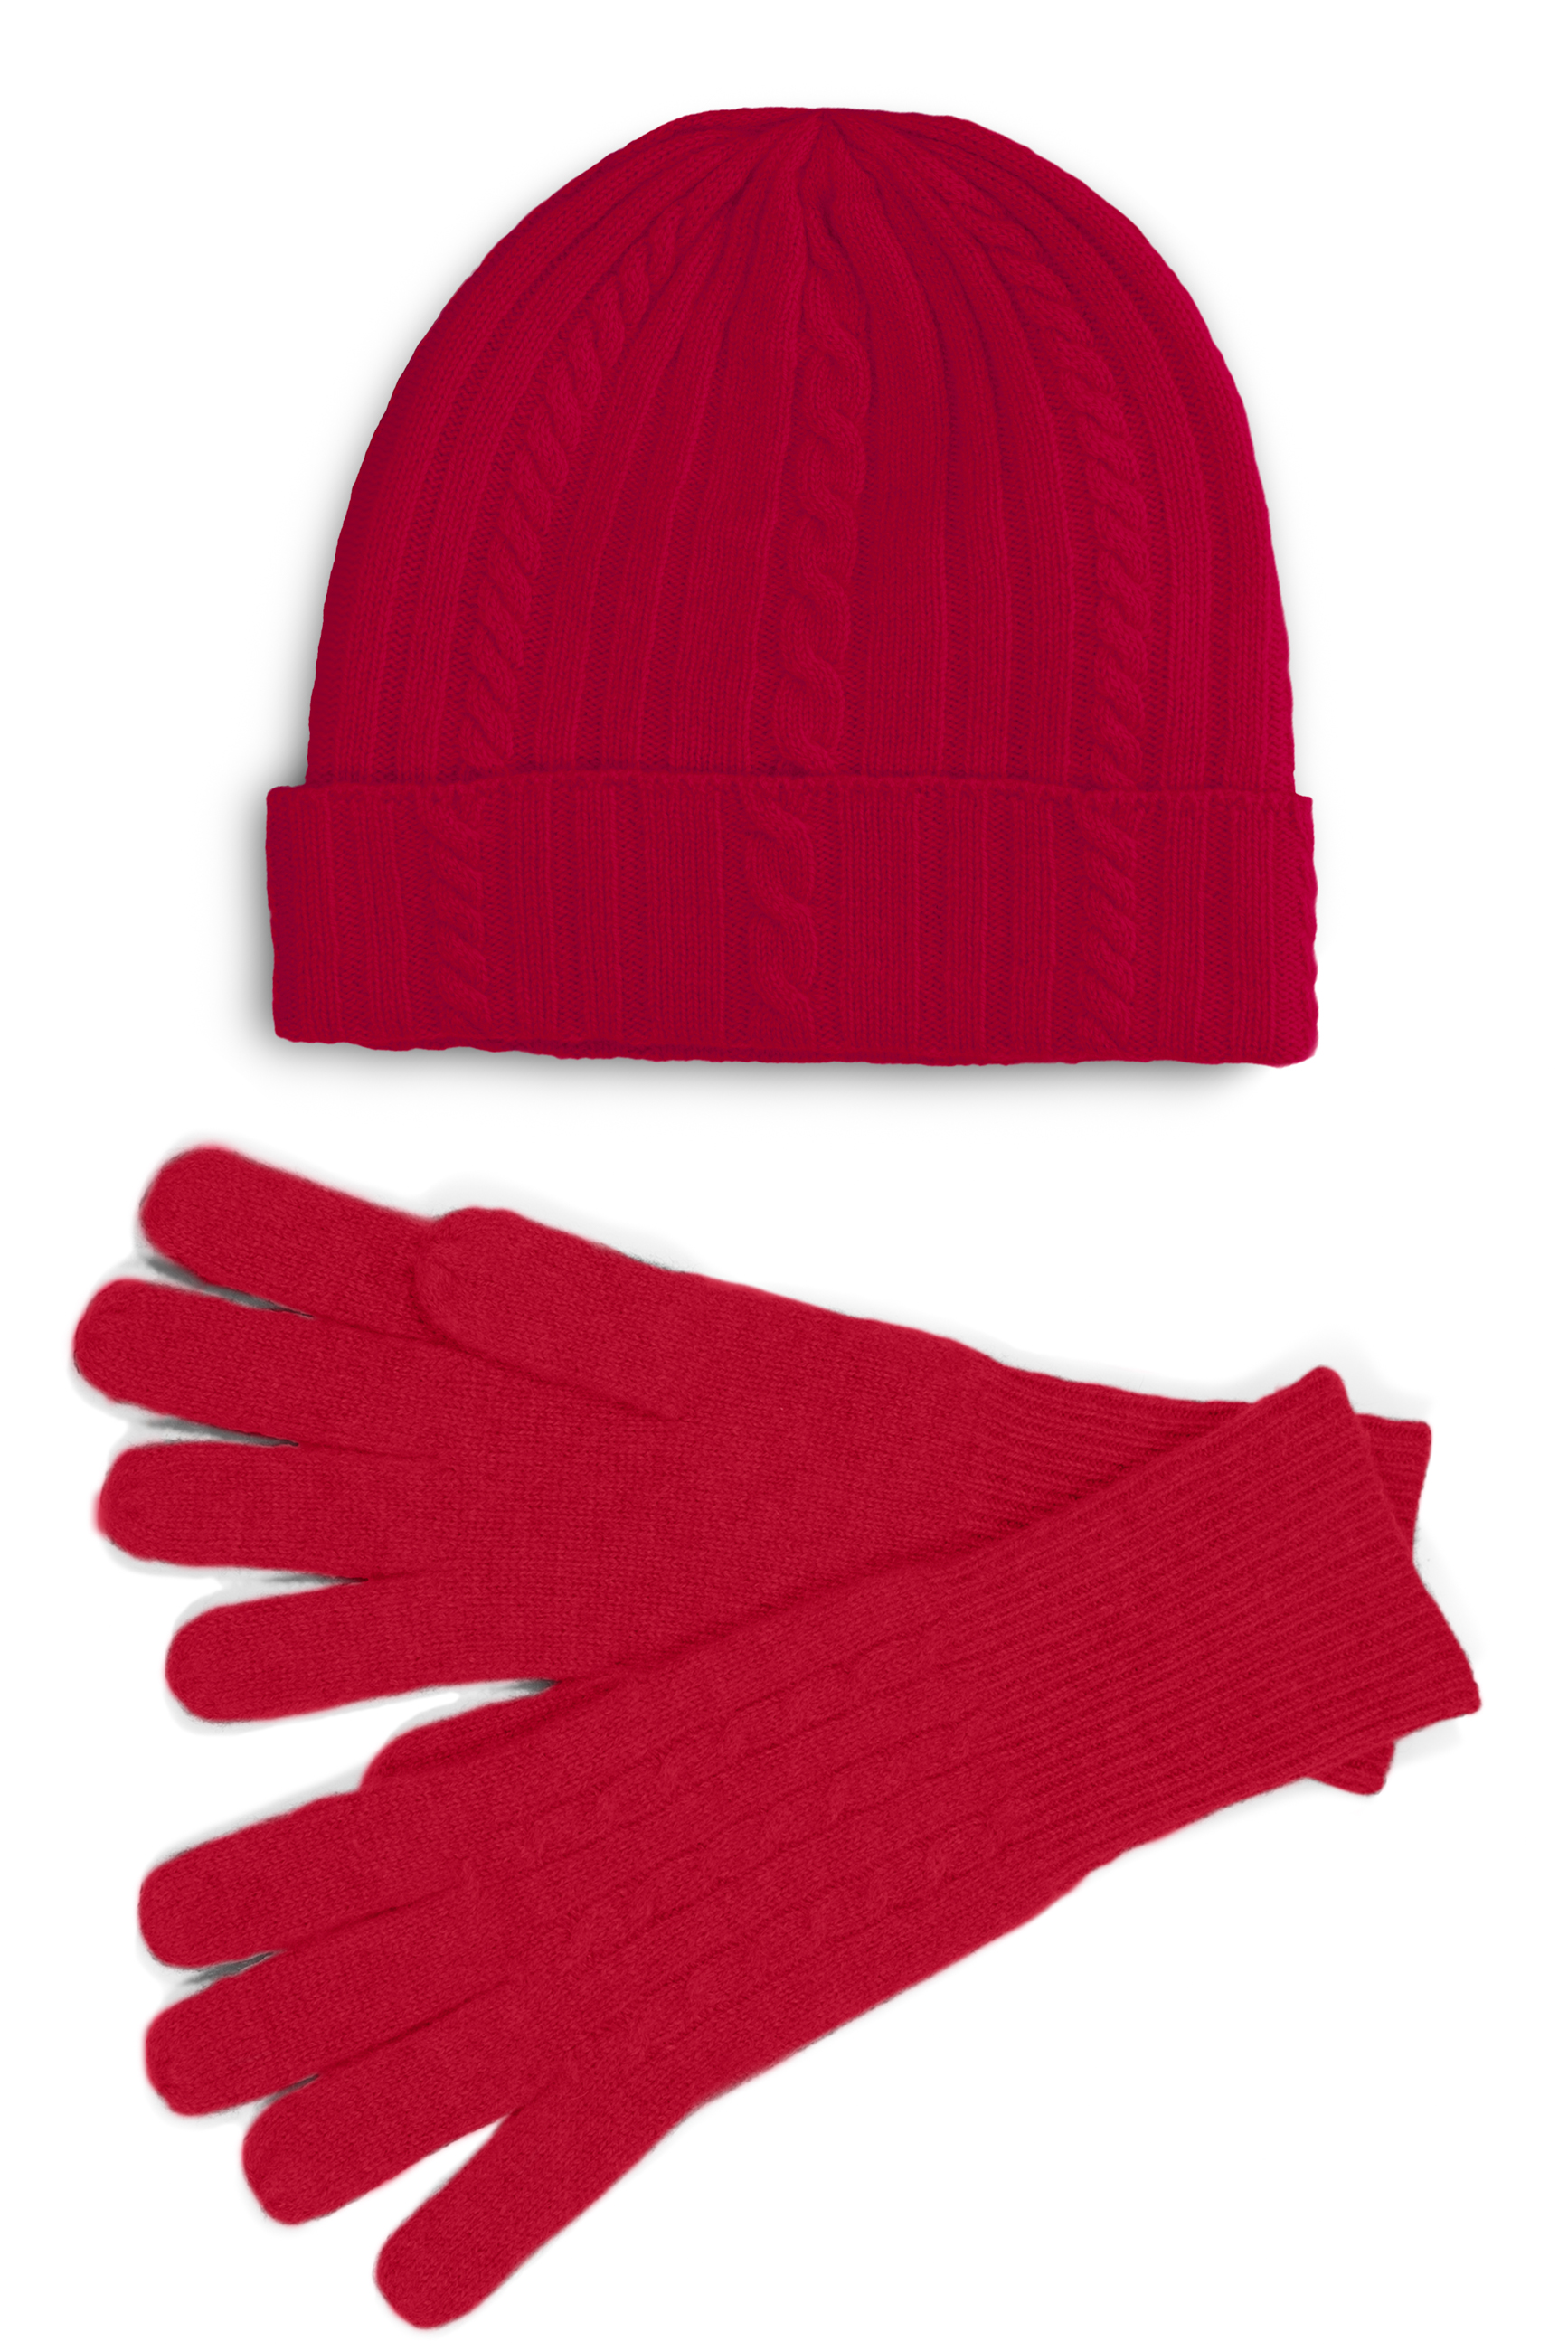 Fishers Finery 100% Pure Cashmere Hat & Glove Set w/ Gift Box at Sears.com